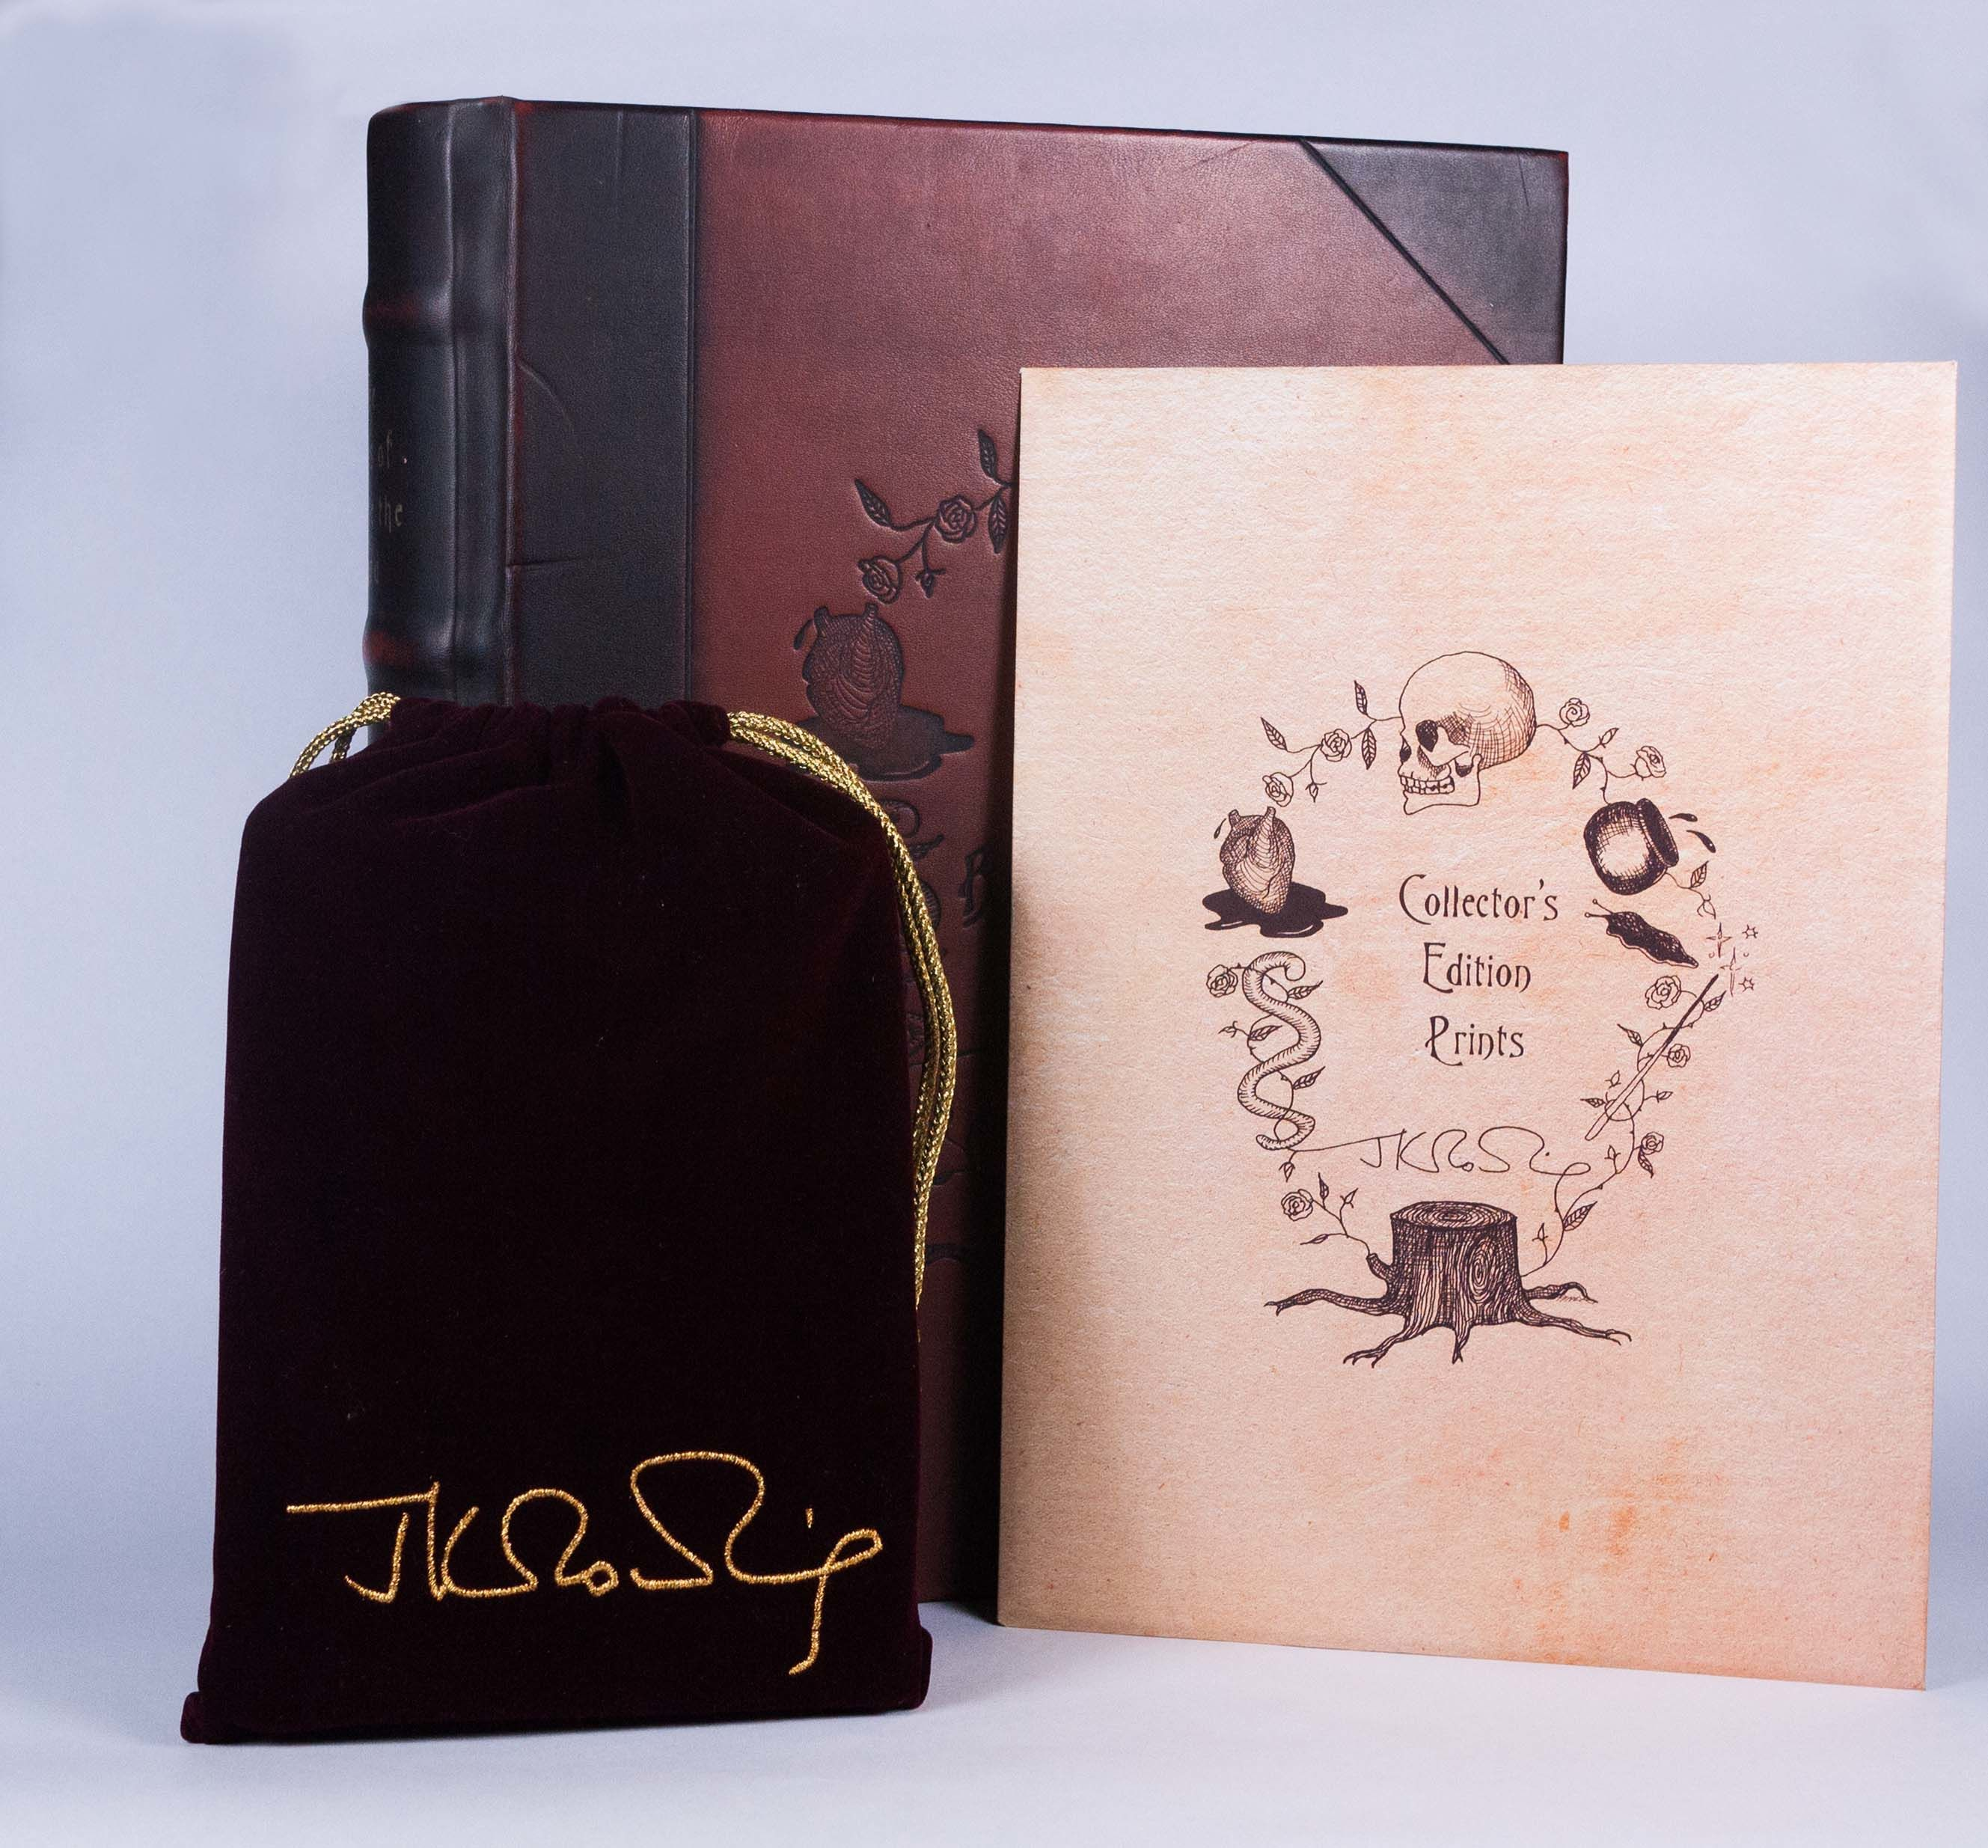 9780956010902 - The Tales of Beedle the Bard, Collector's Edition